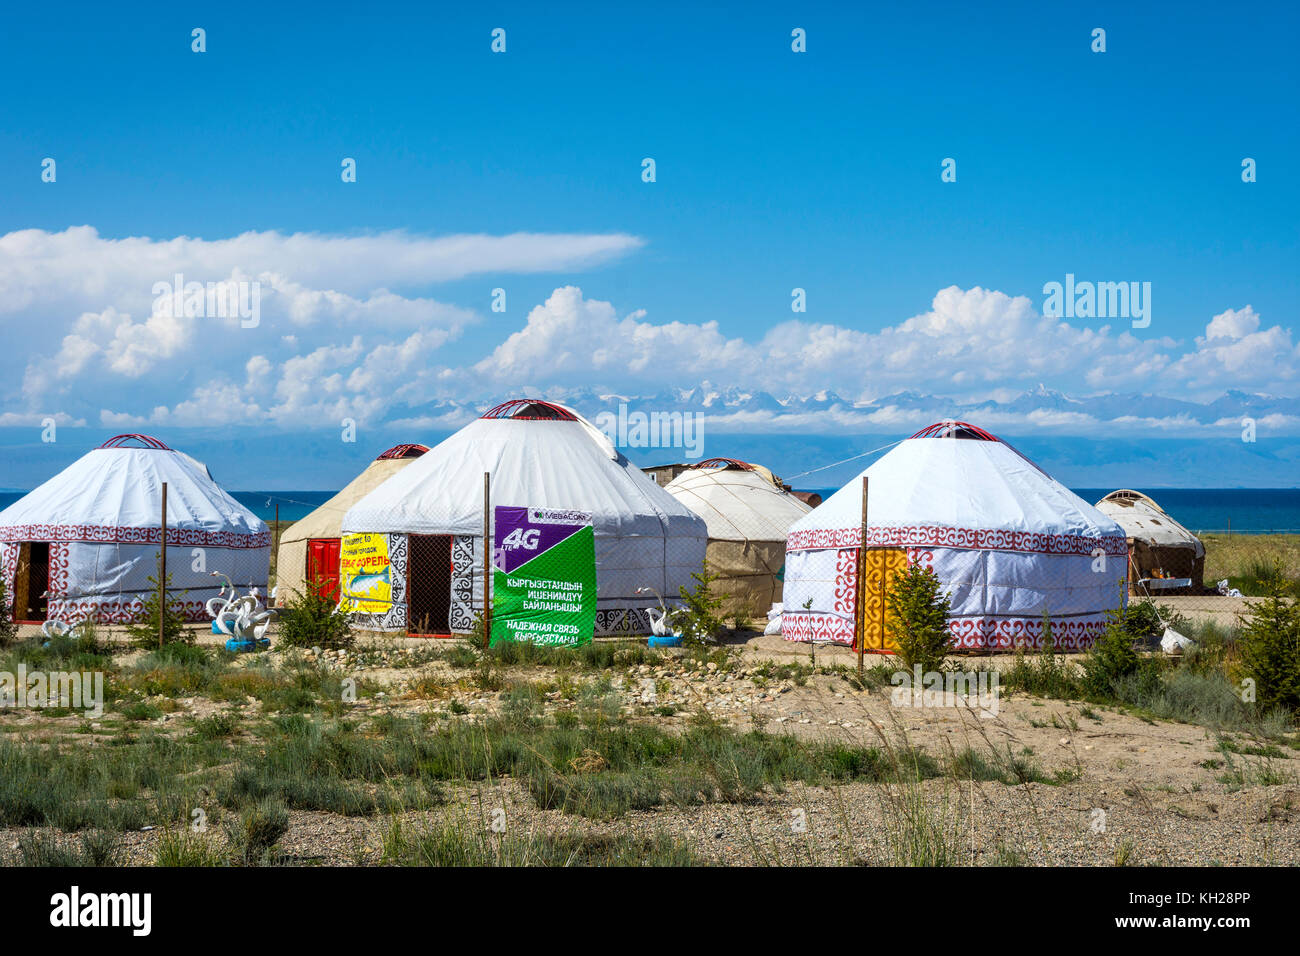 KYZYL TOO, KYRGYZSTAN - AUGUST 8: Yurts next to Karakol lake with the advertizing for local mobile data providers. - Stock Image